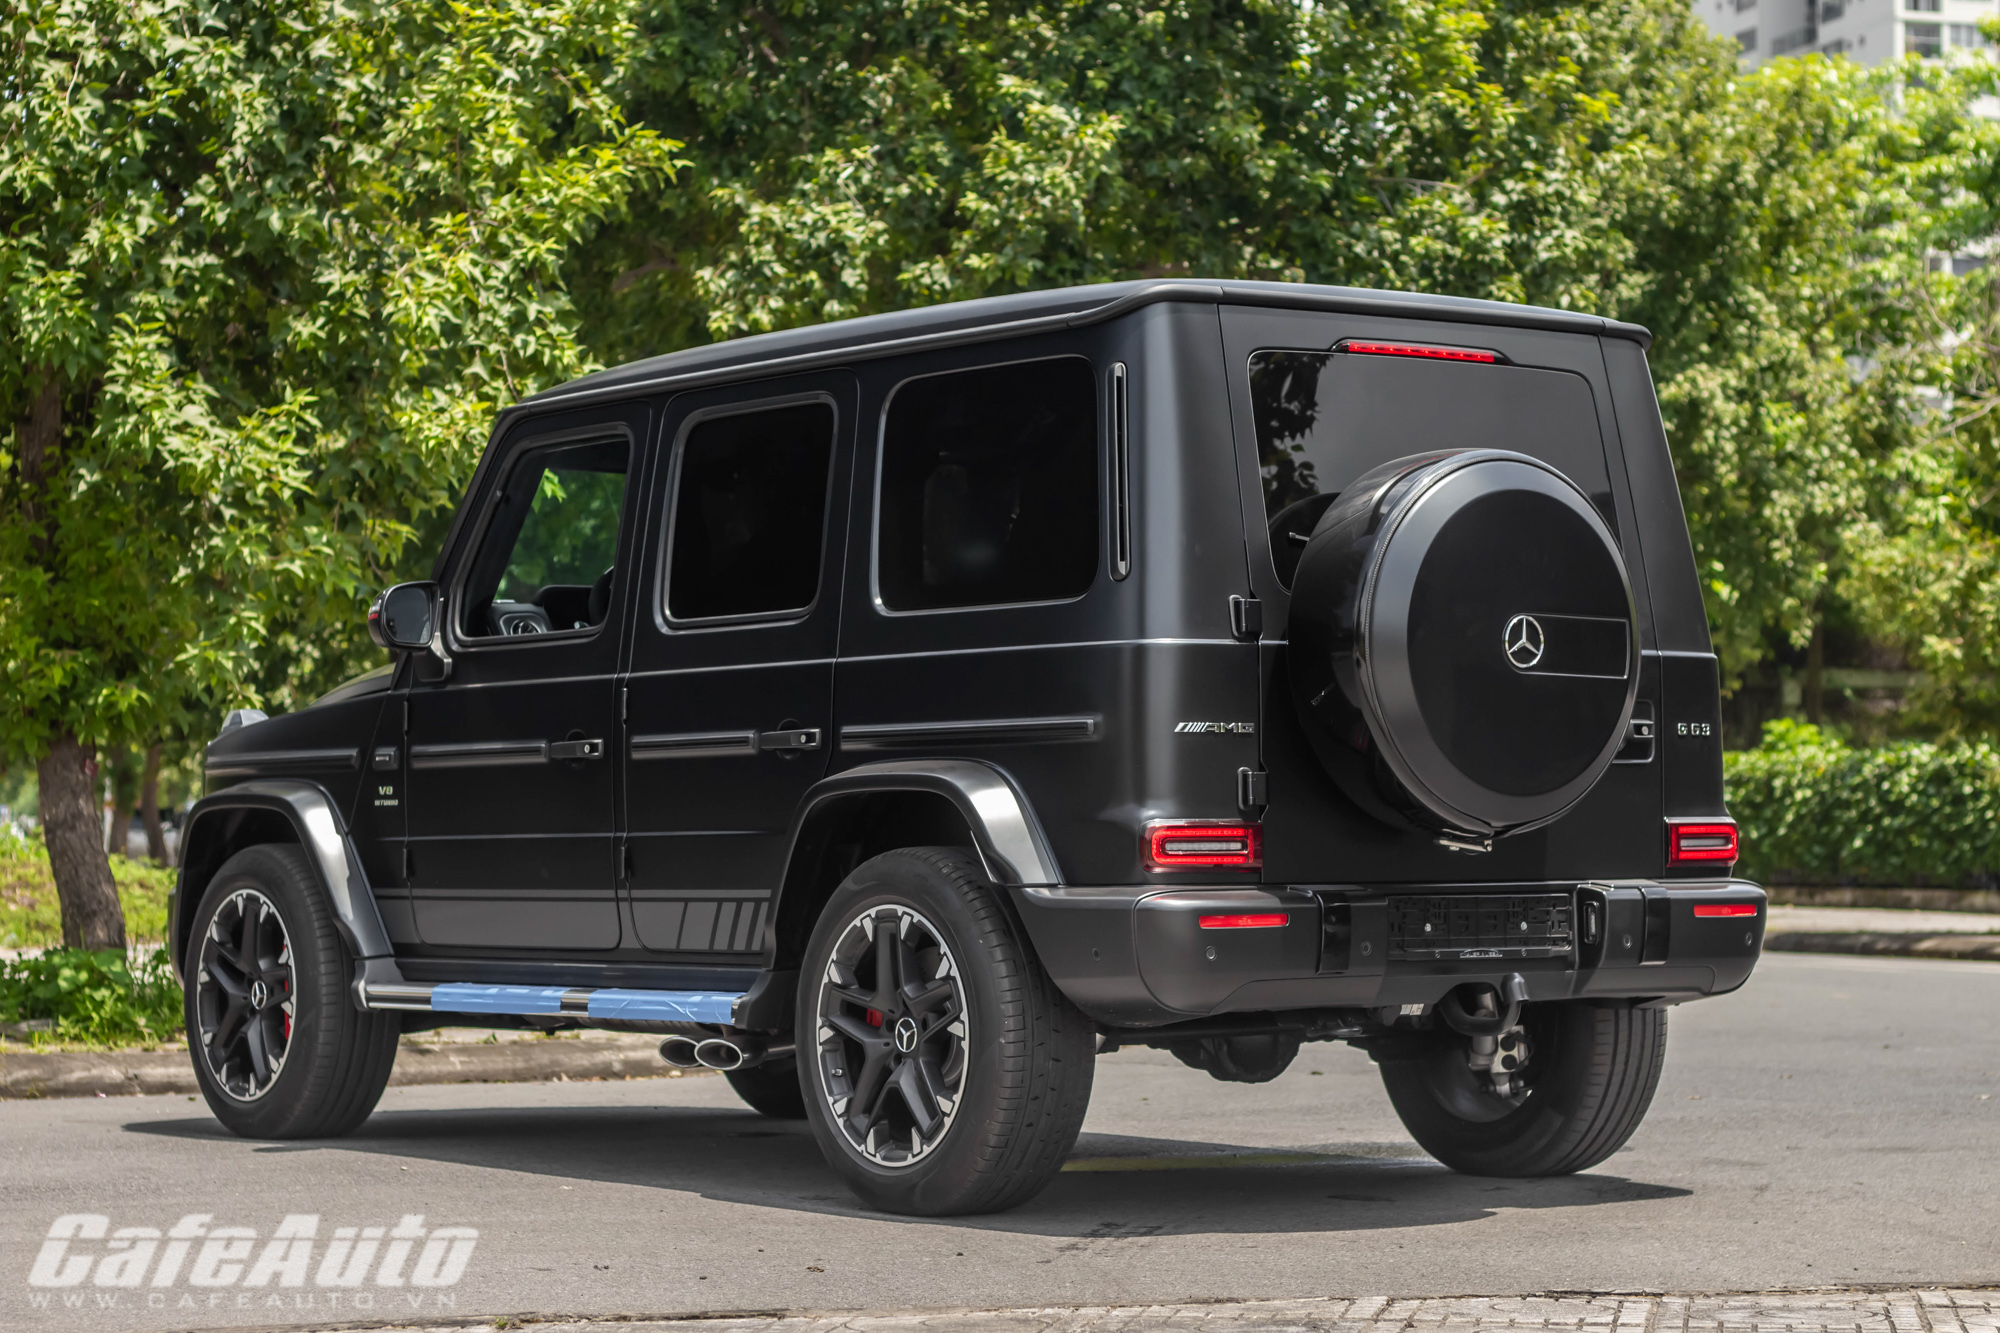 MercedesG63TrailPackage-cafeautovn-7